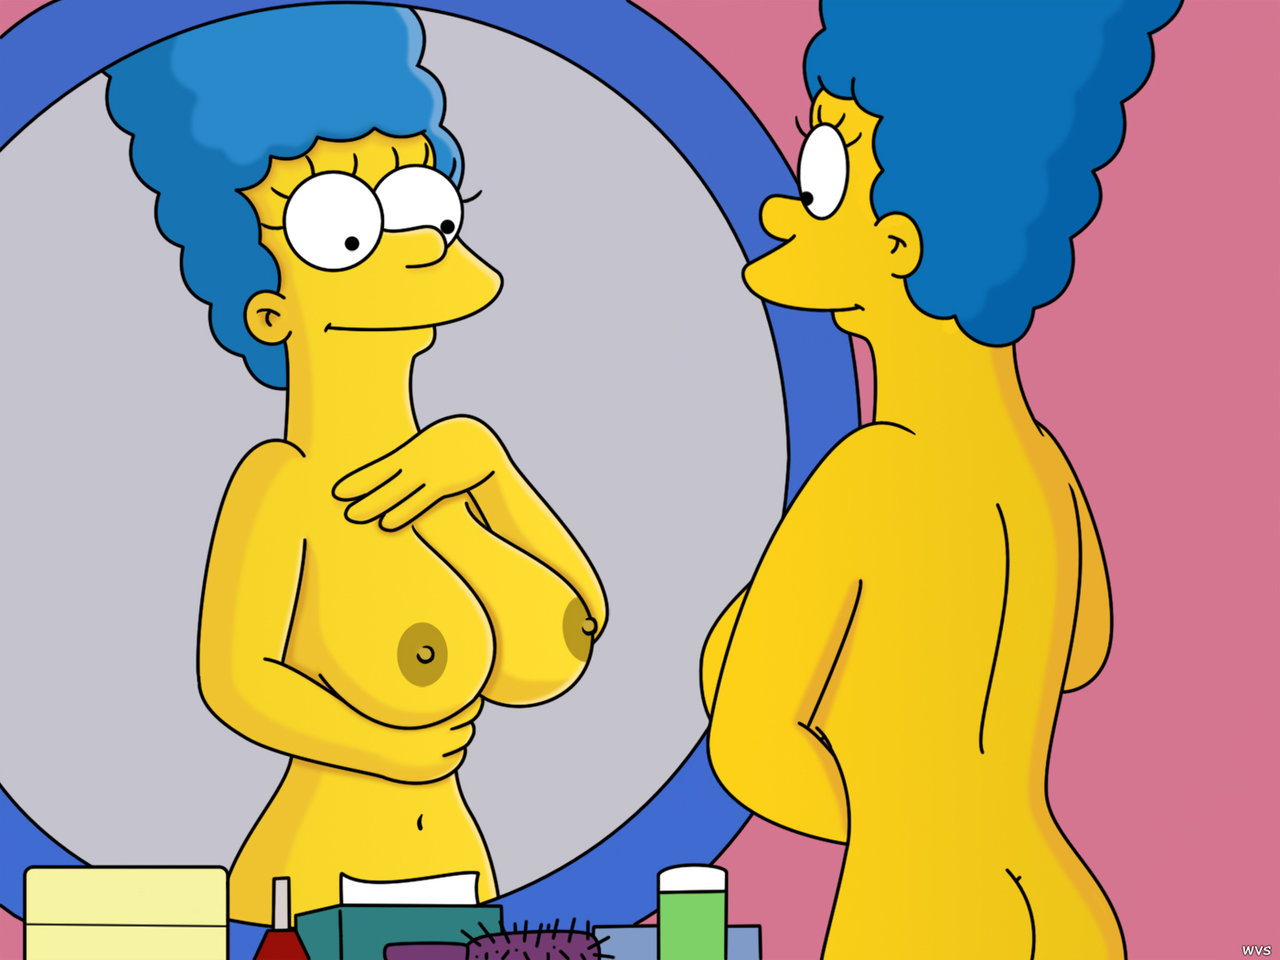 Naked pictures of the women from the simpsons, undressed young girls ready for sex